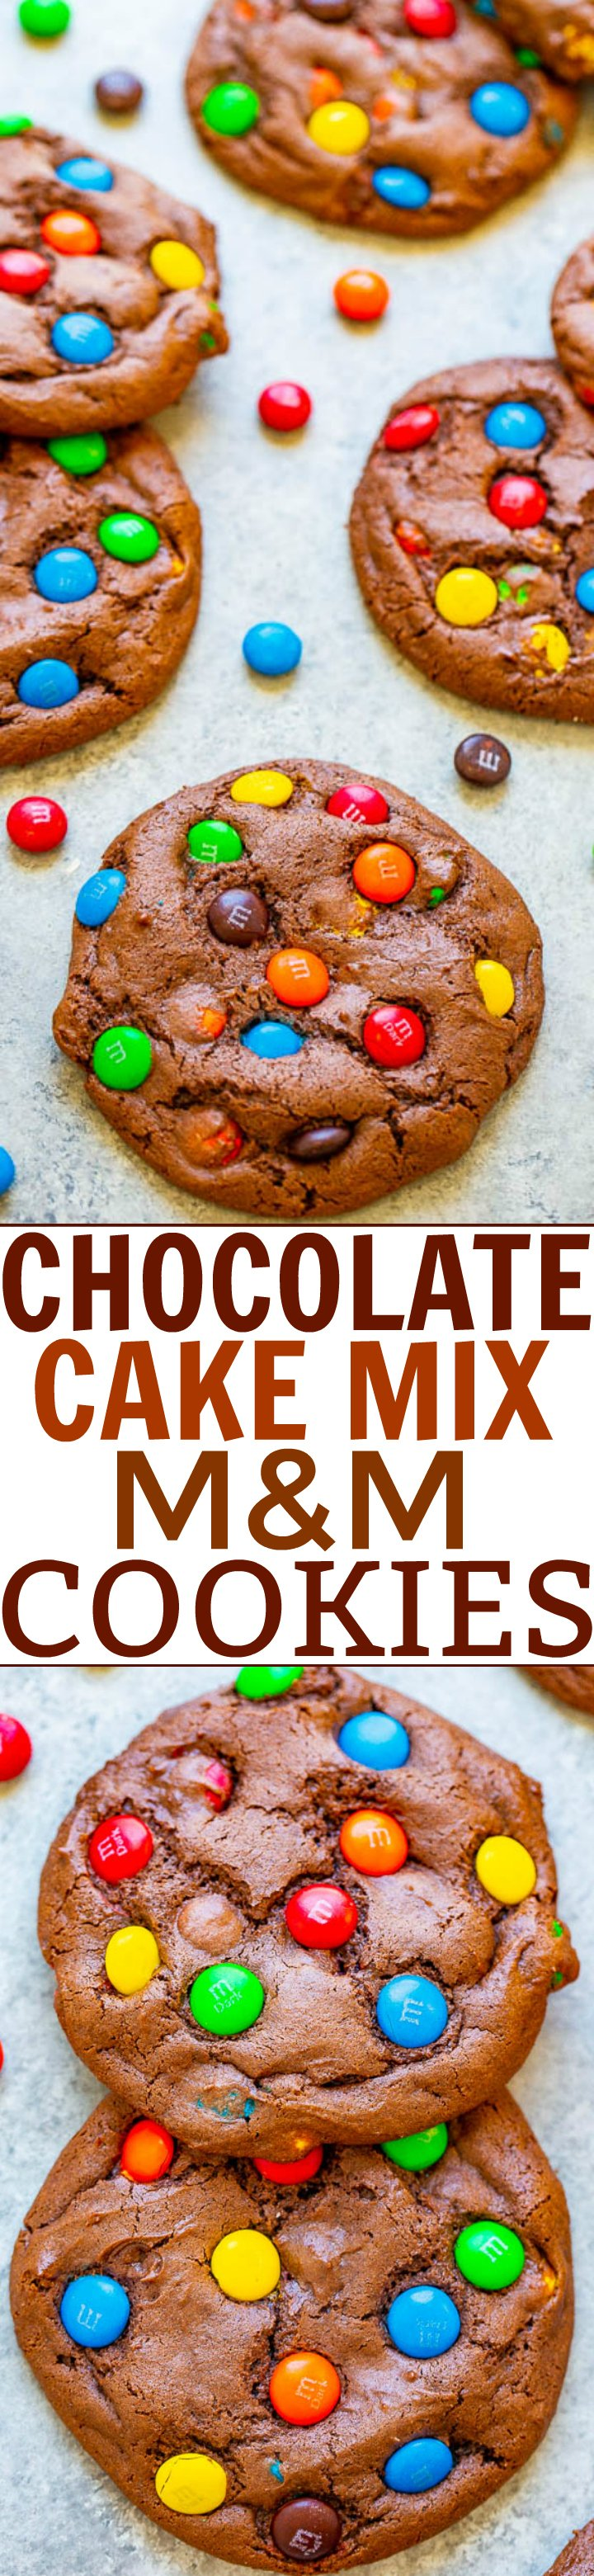 Chocolate Cake Mix M&M Cookies - Foolproof cookies made with just 5 ingredients!! If you're craving chocolate and want to make super EASY cookies that are soft, FUDGY, and delicious, this is the recipe to make!!